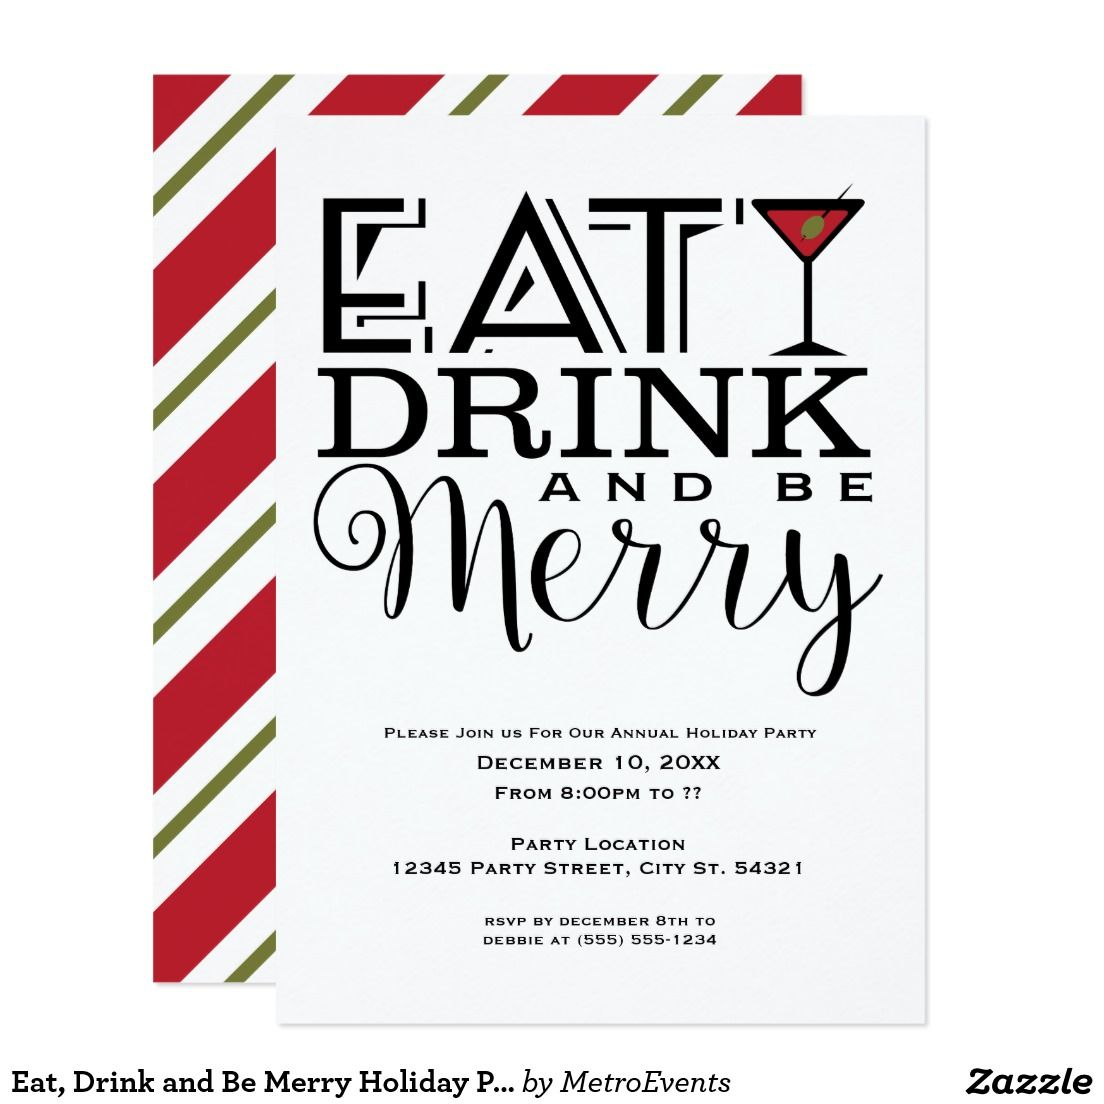 Eat, Drink and Be Merry Holiday Party Invitations | Christmas Party ...